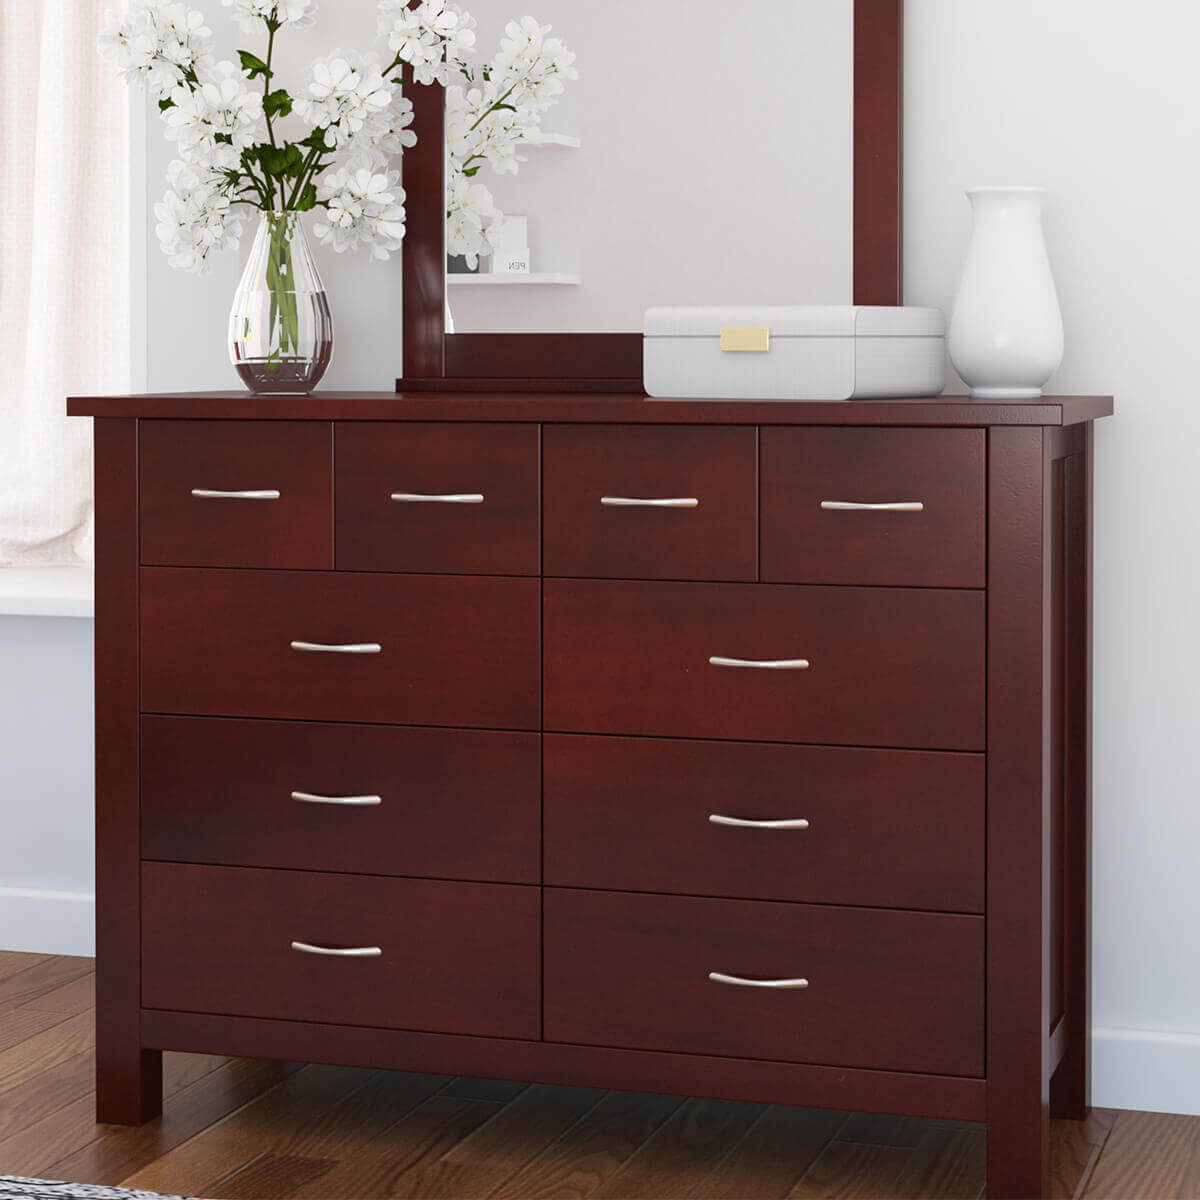 Amenia Solid Mahogany Wood 10 Drawer Dresser